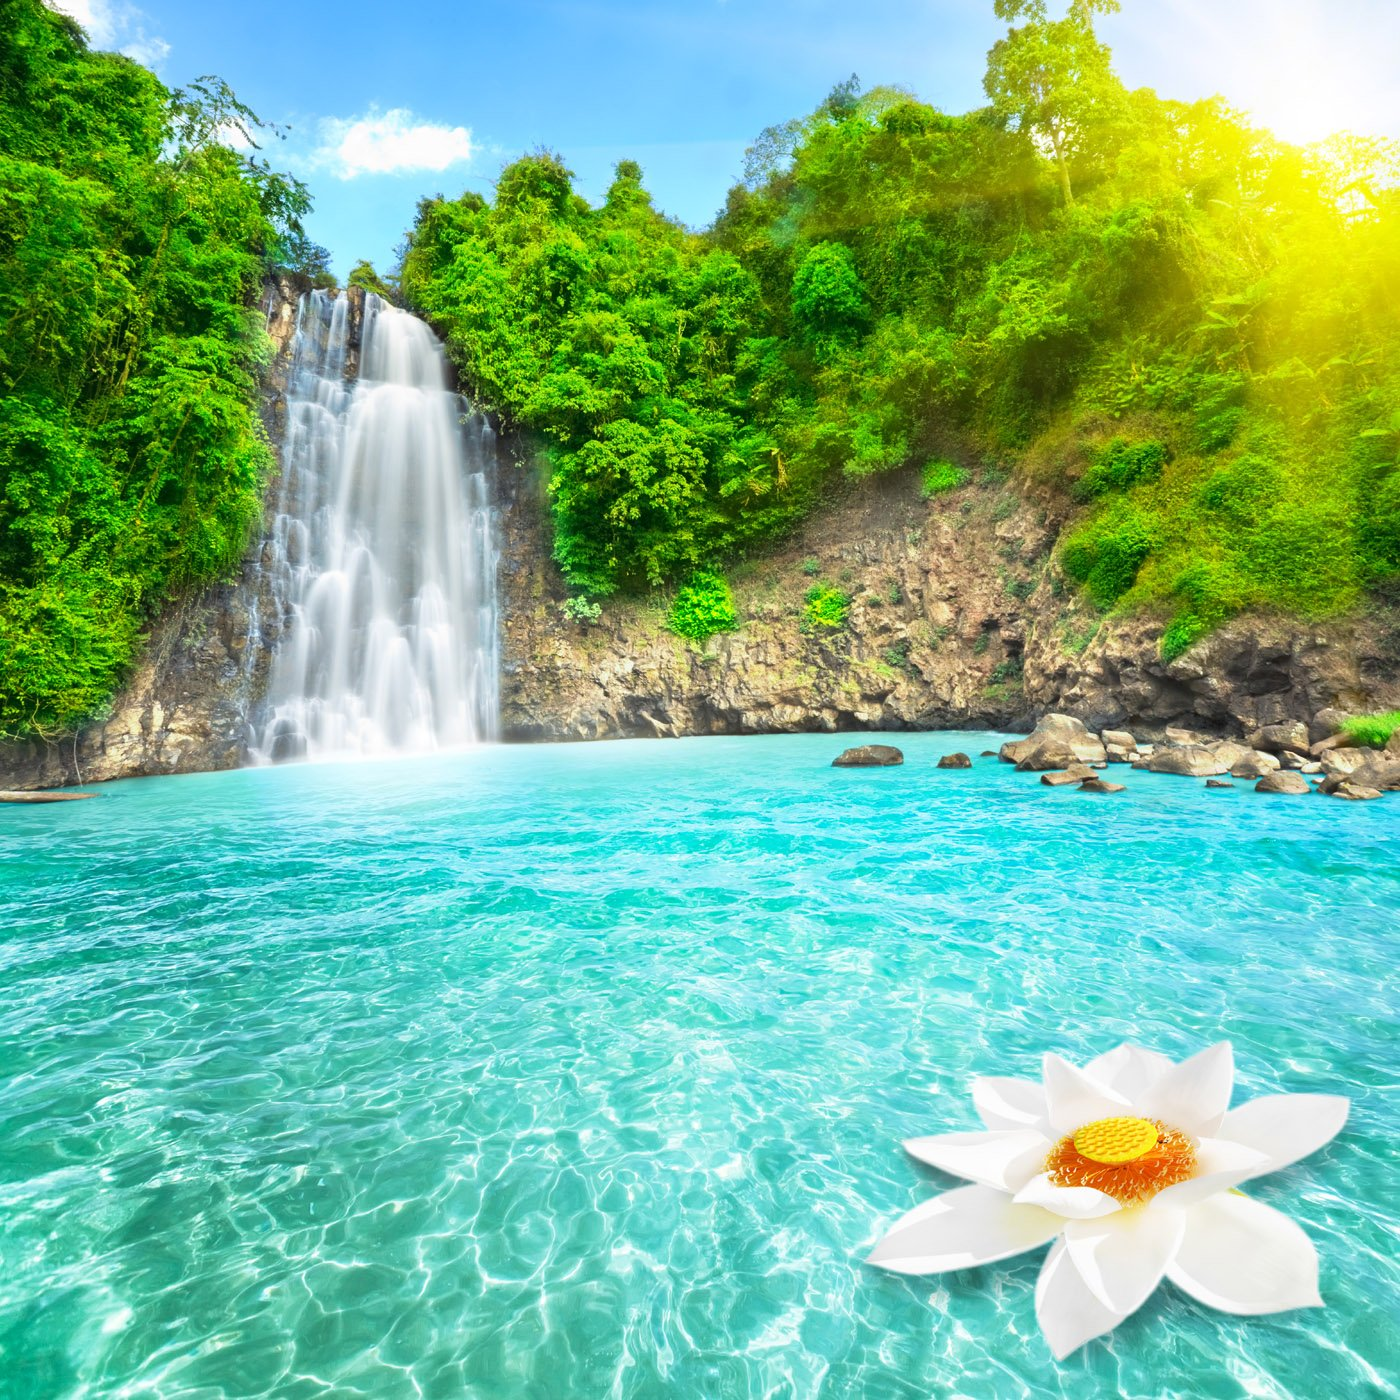 Free Download Beautiful Waterfall Hd Wallpaper Nature Wallpapers 1400x1400 For Your Desktop Mobile Tablet Explore 50 Best And Beautiful Wallpapers Free Spring Desktop Wallpaper Beautiful Desktop Wallpapers And Backgrounds